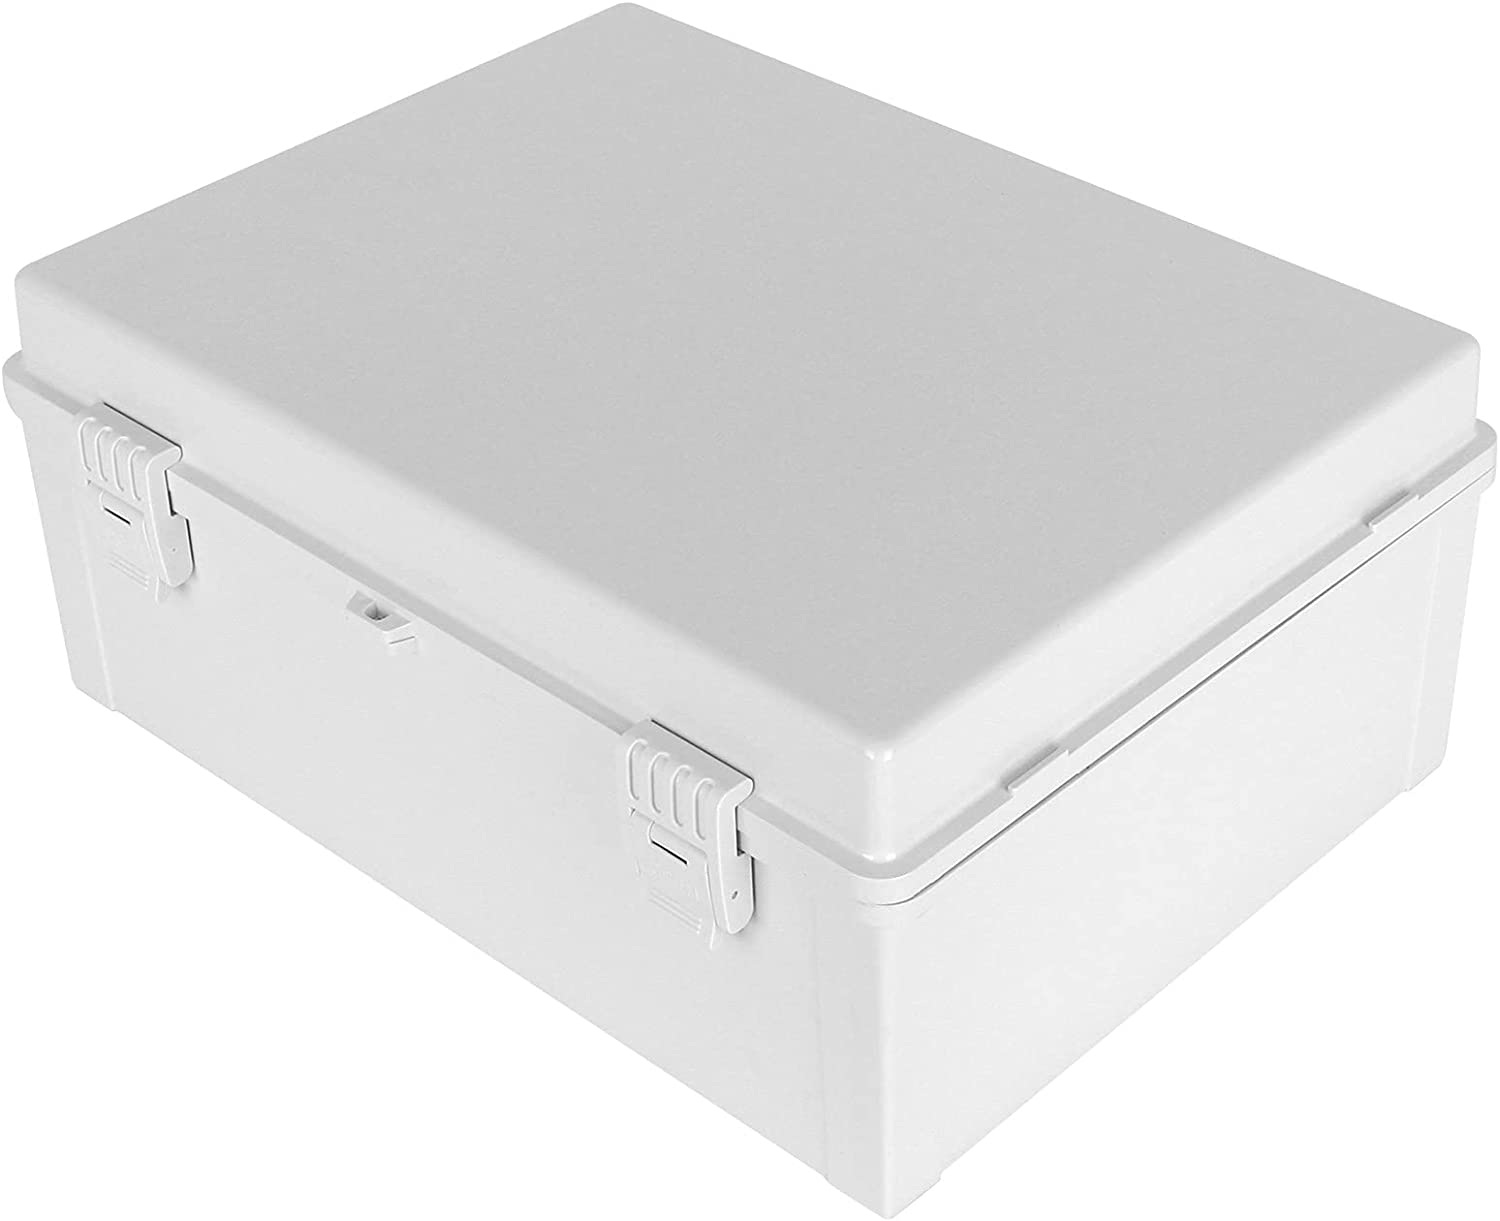 Outdoor Electric Max 58% OFF Box Protect Distribution Easy-to-use The Material ABS